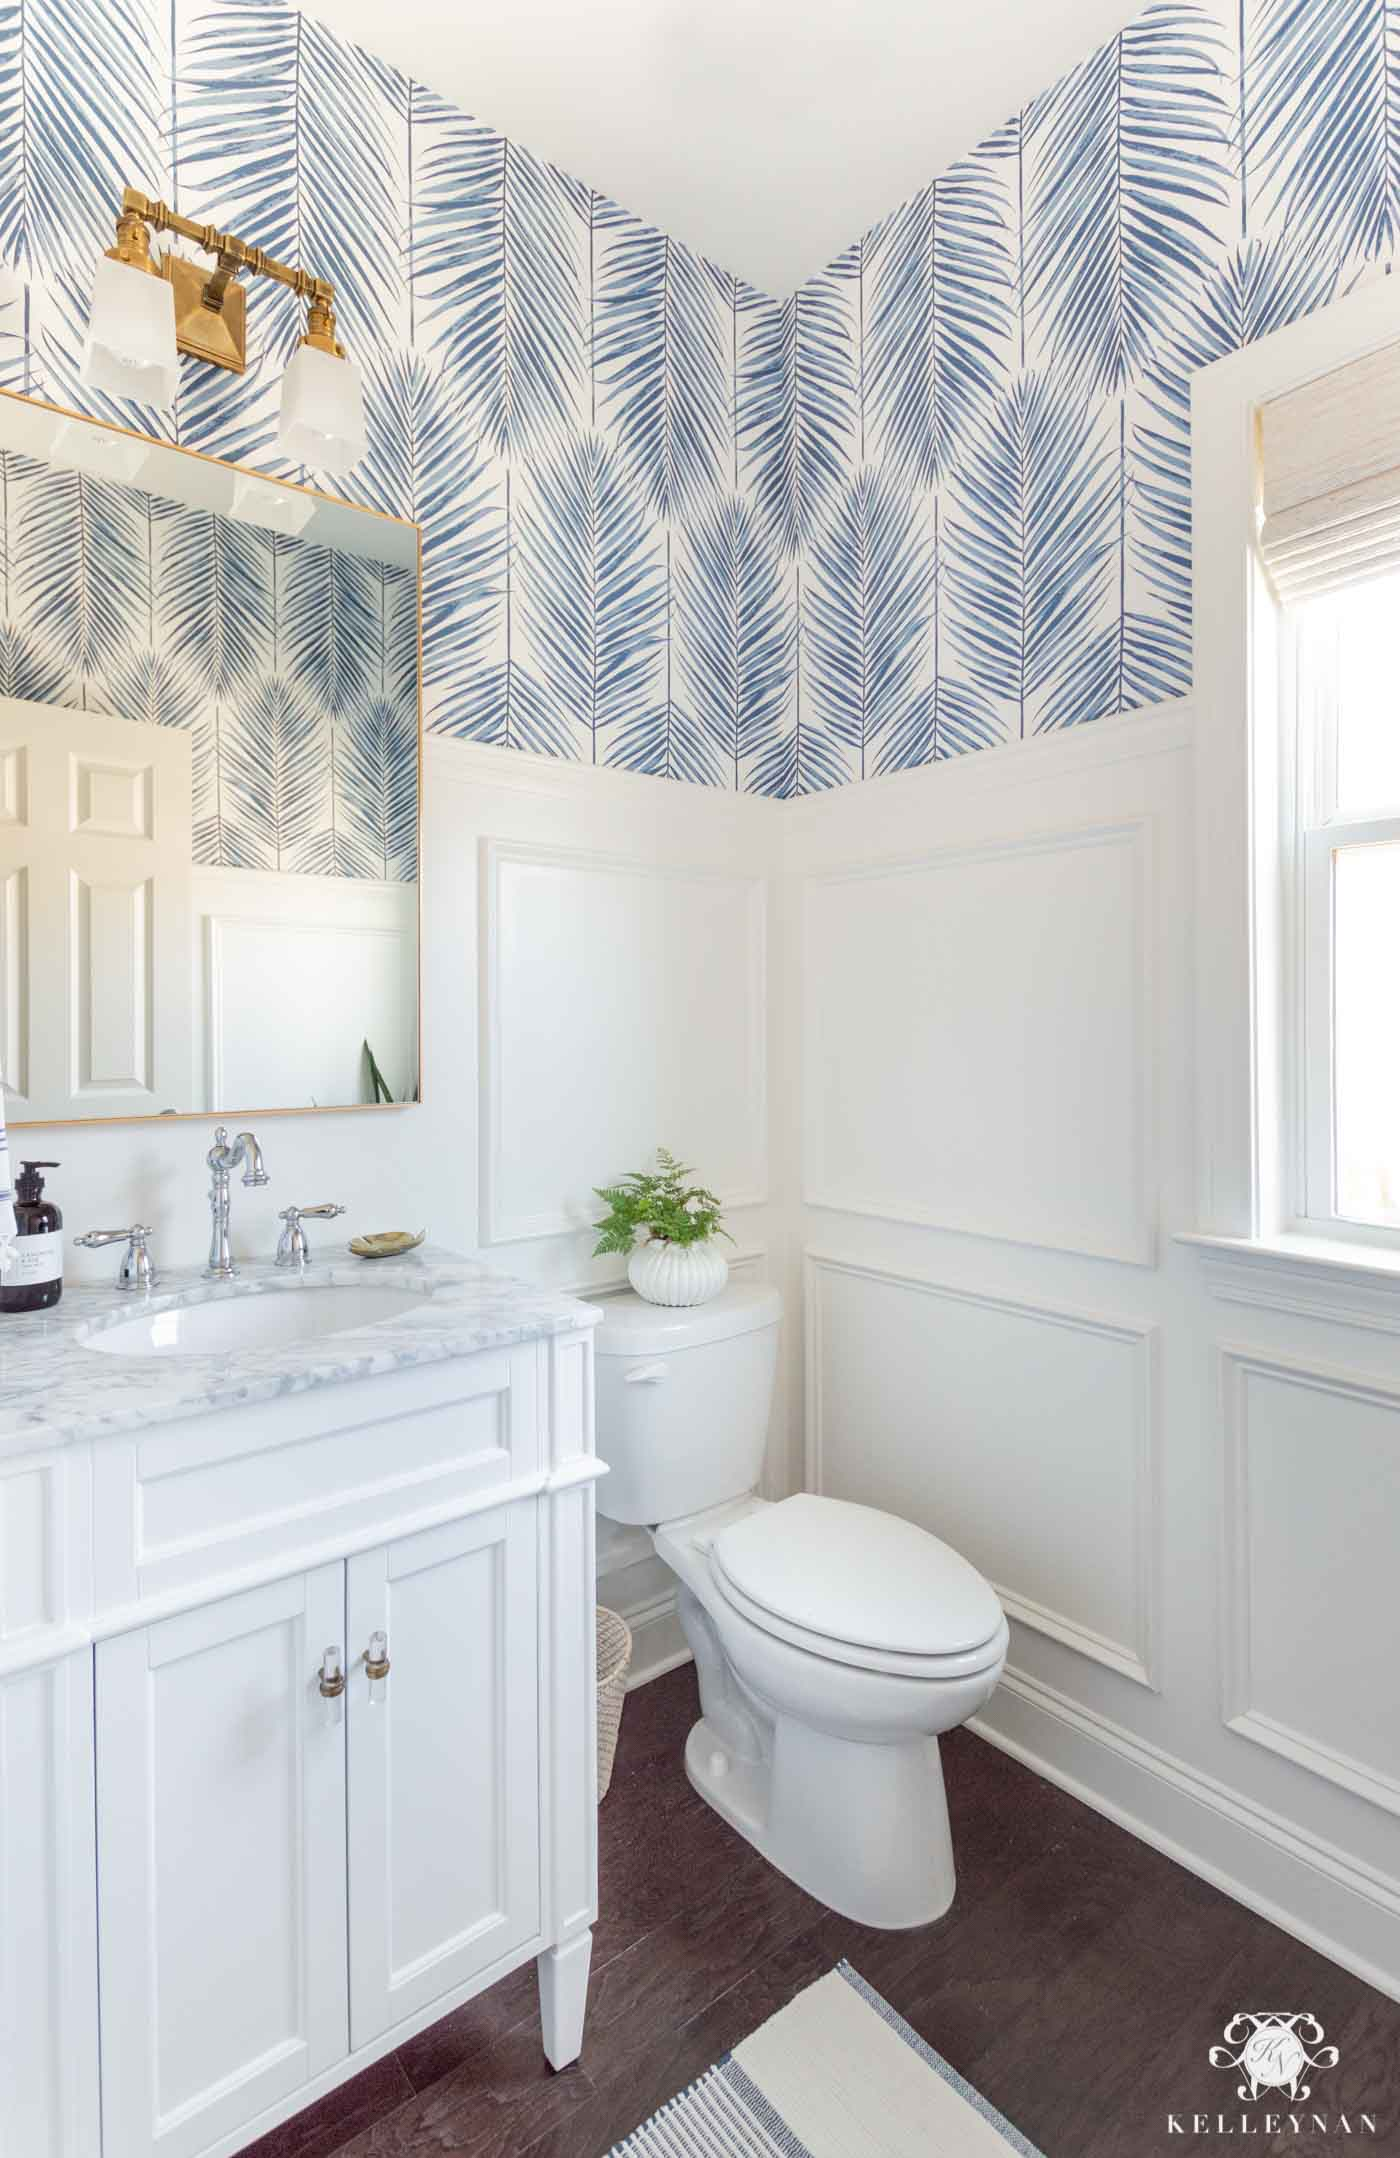 Powder Room Design Ideas in this Makeover Reveal, featuring picture frame moulding and blue palm wallpaper